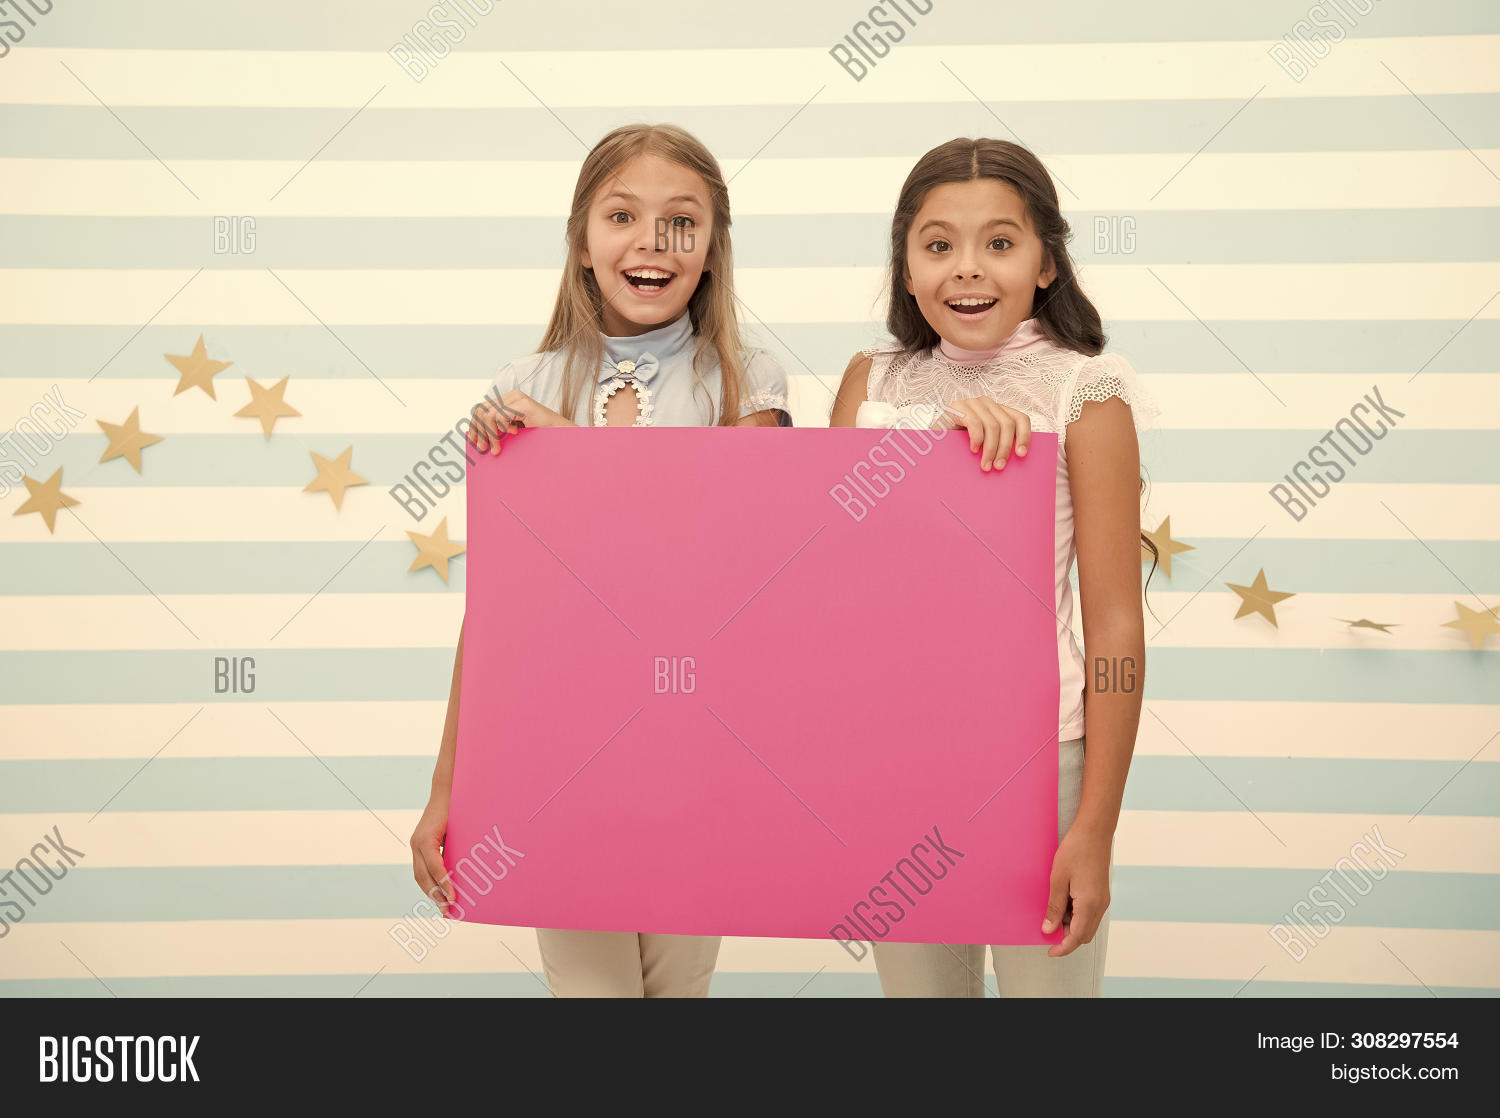 ads,advertise,advertisement,advertising,agency,background,banner,blank,child,childhood,children,concept,copy,creative,design,display,emotions,girls,good,hands,happiness,happy,hold,information,kid,little,marketing,media,message,paper,pink,poster,school,sisters,small,smile,smiling,space,your